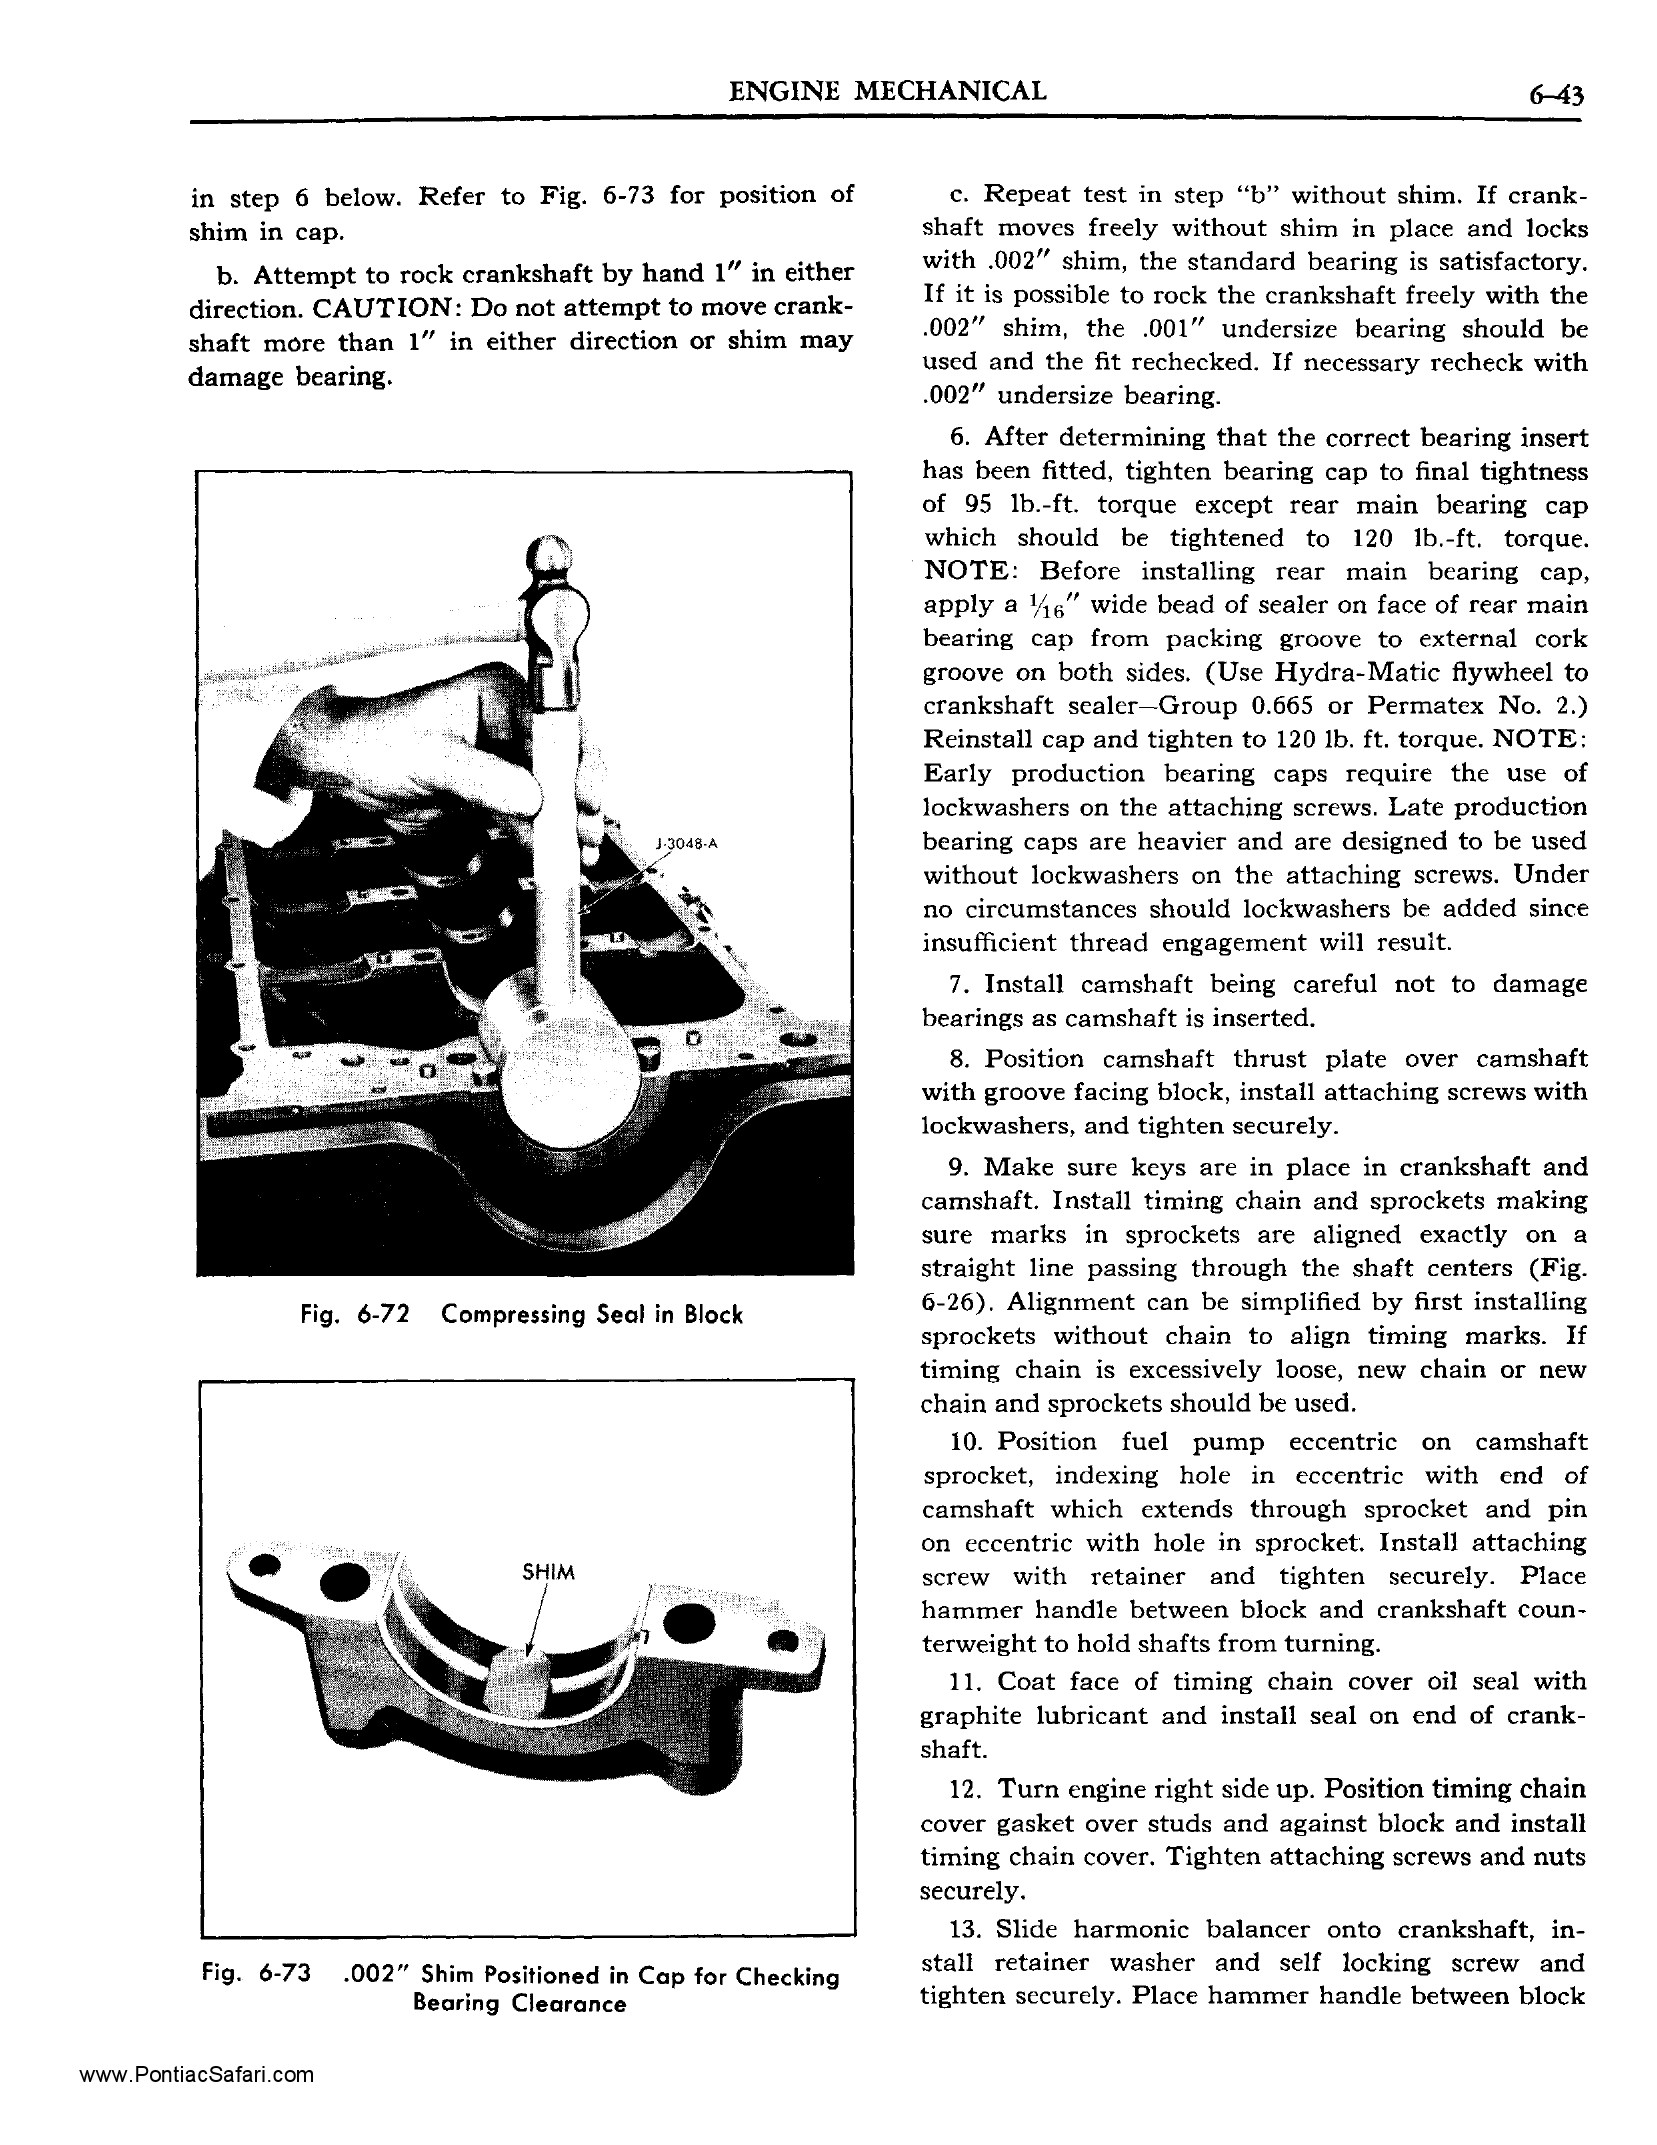 1955 Pontiac Shop Manual- Engine Mechanical Page 44 of 53